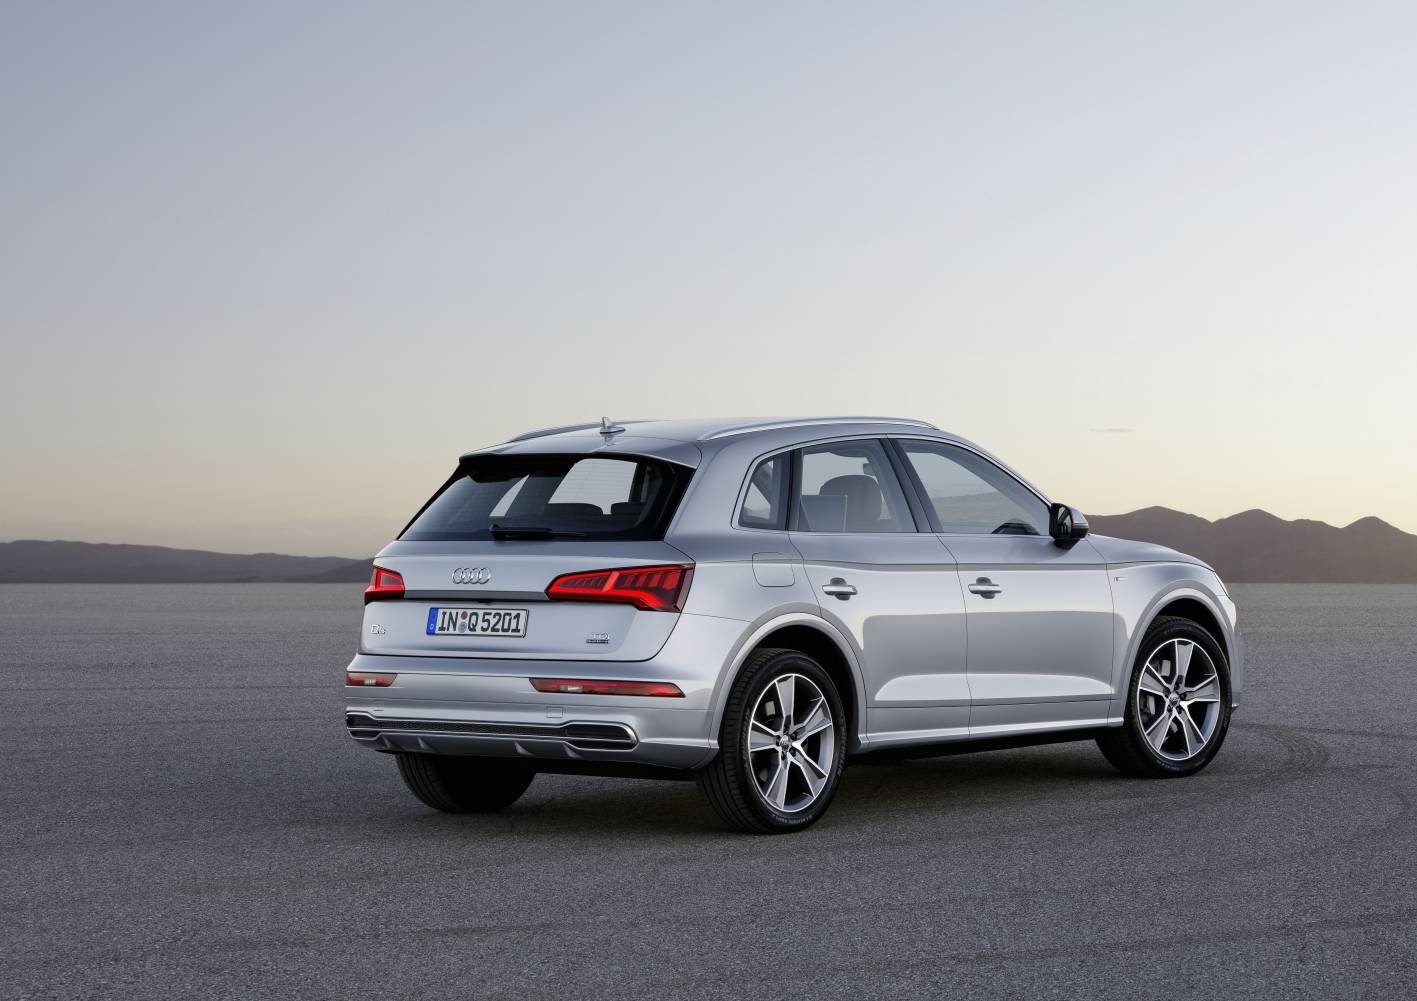 Taking a sportier and tauter approach to design, the new Q5 is set to continue its predecessor's success with a vastly improved interior and more efficient ...